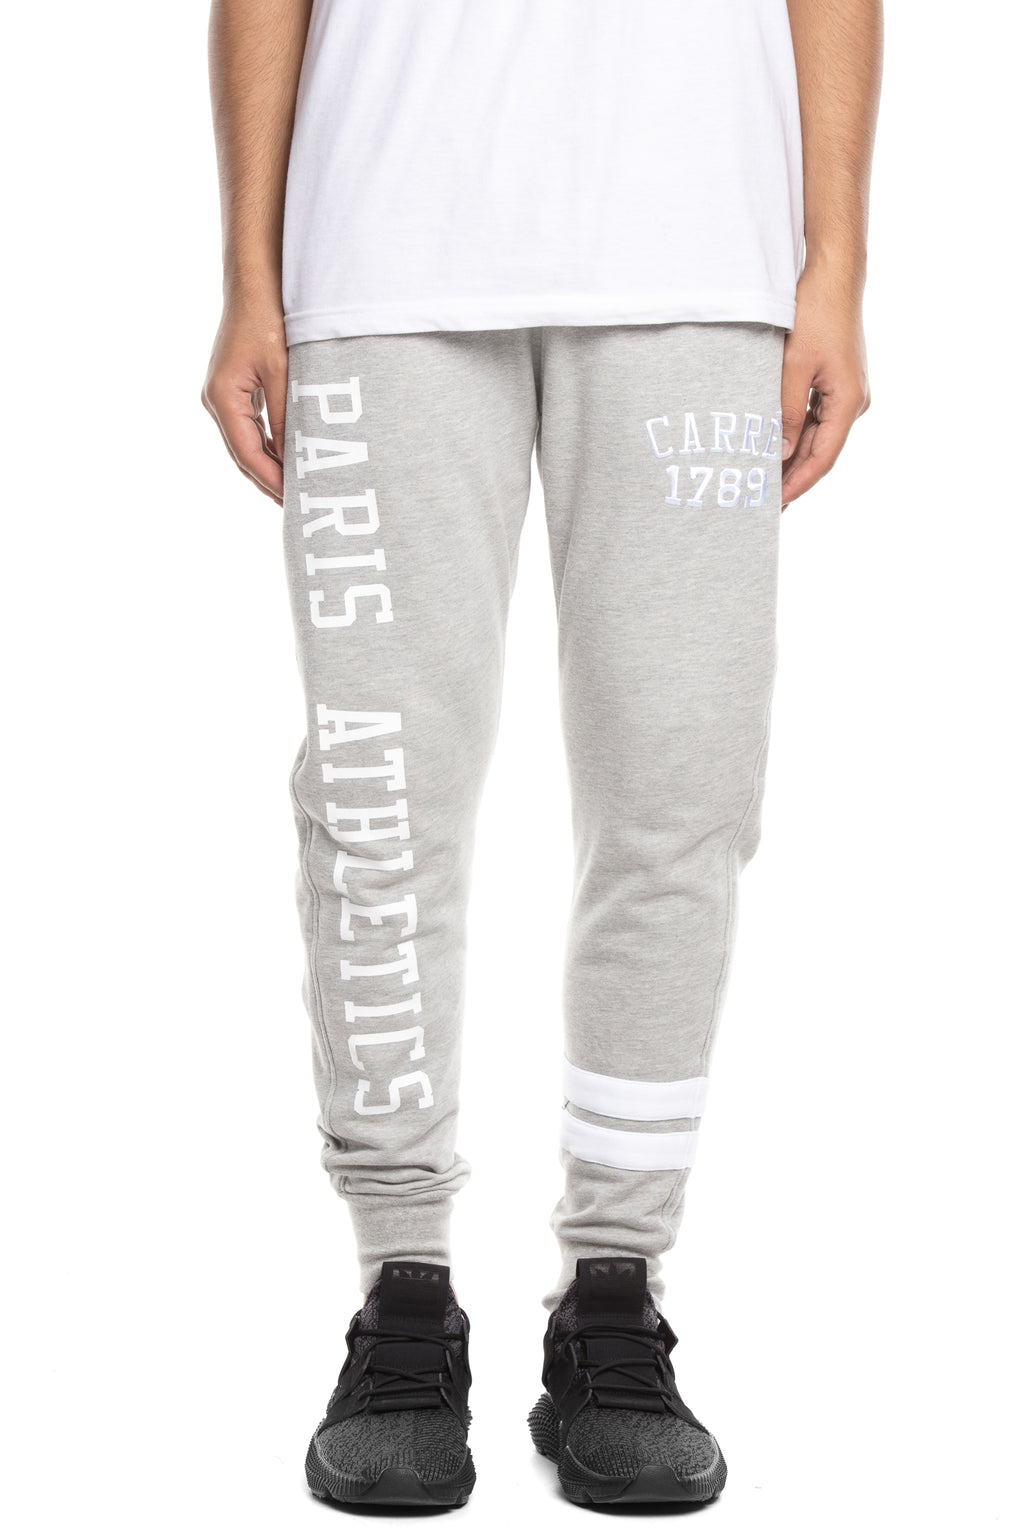 Carré Paris Athletics Trackpants Grey Marle